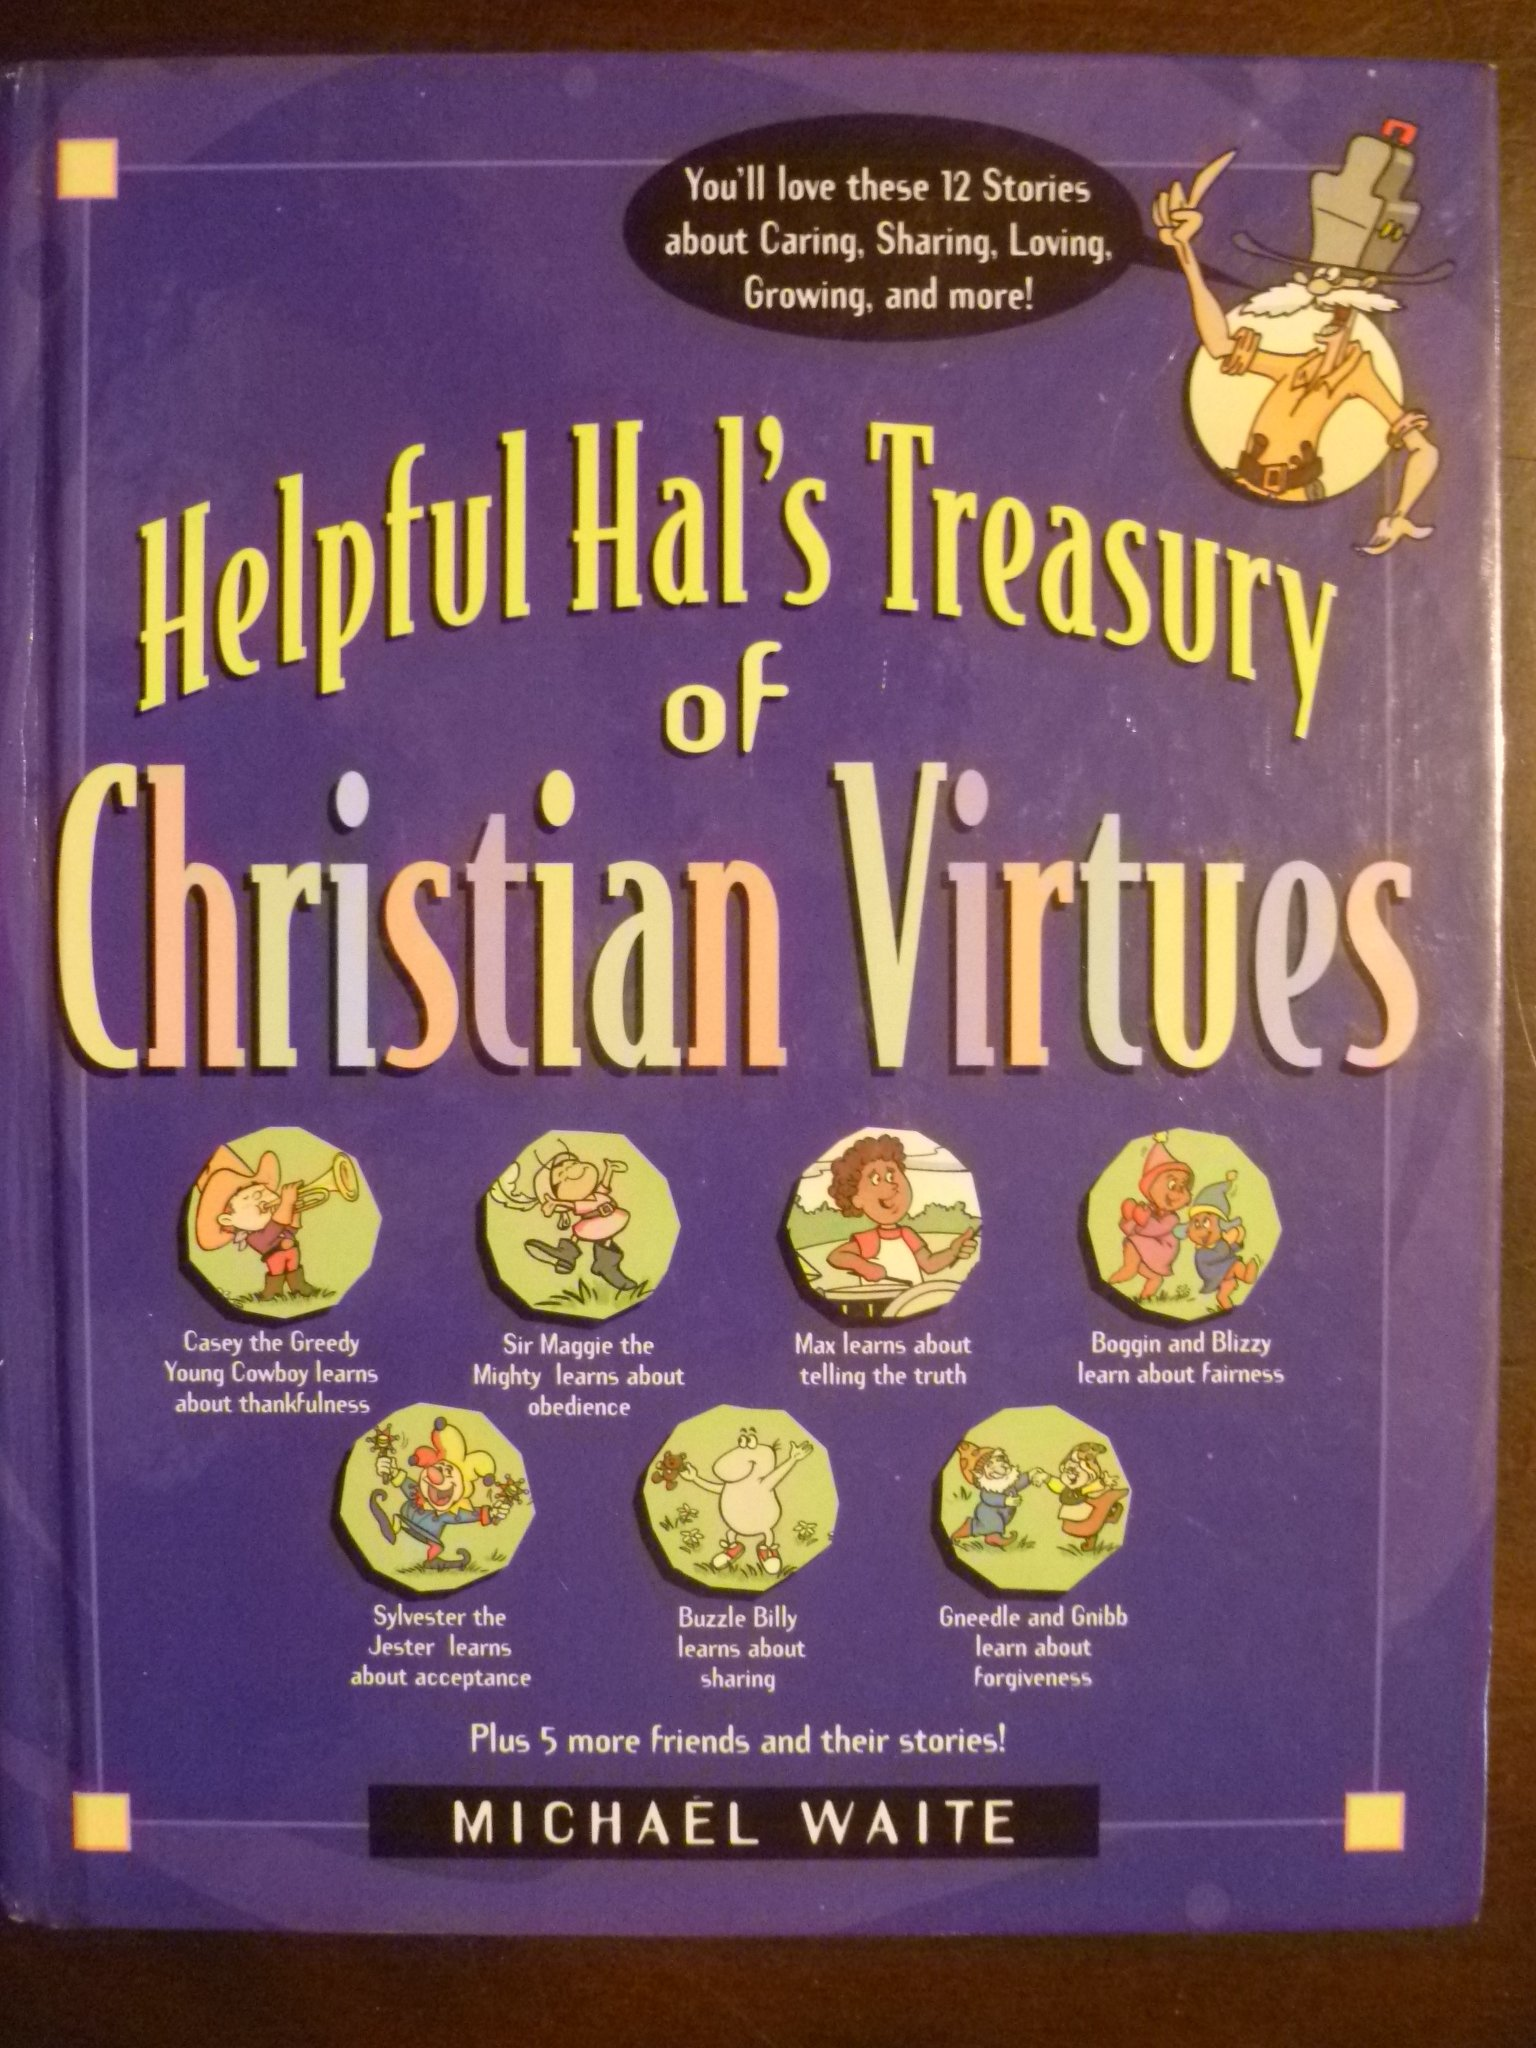 Helpful Hal's Treasury of Christian Virtues (Building Christian Character Series) by Brand: Chariot Victor Pub (Image #1)